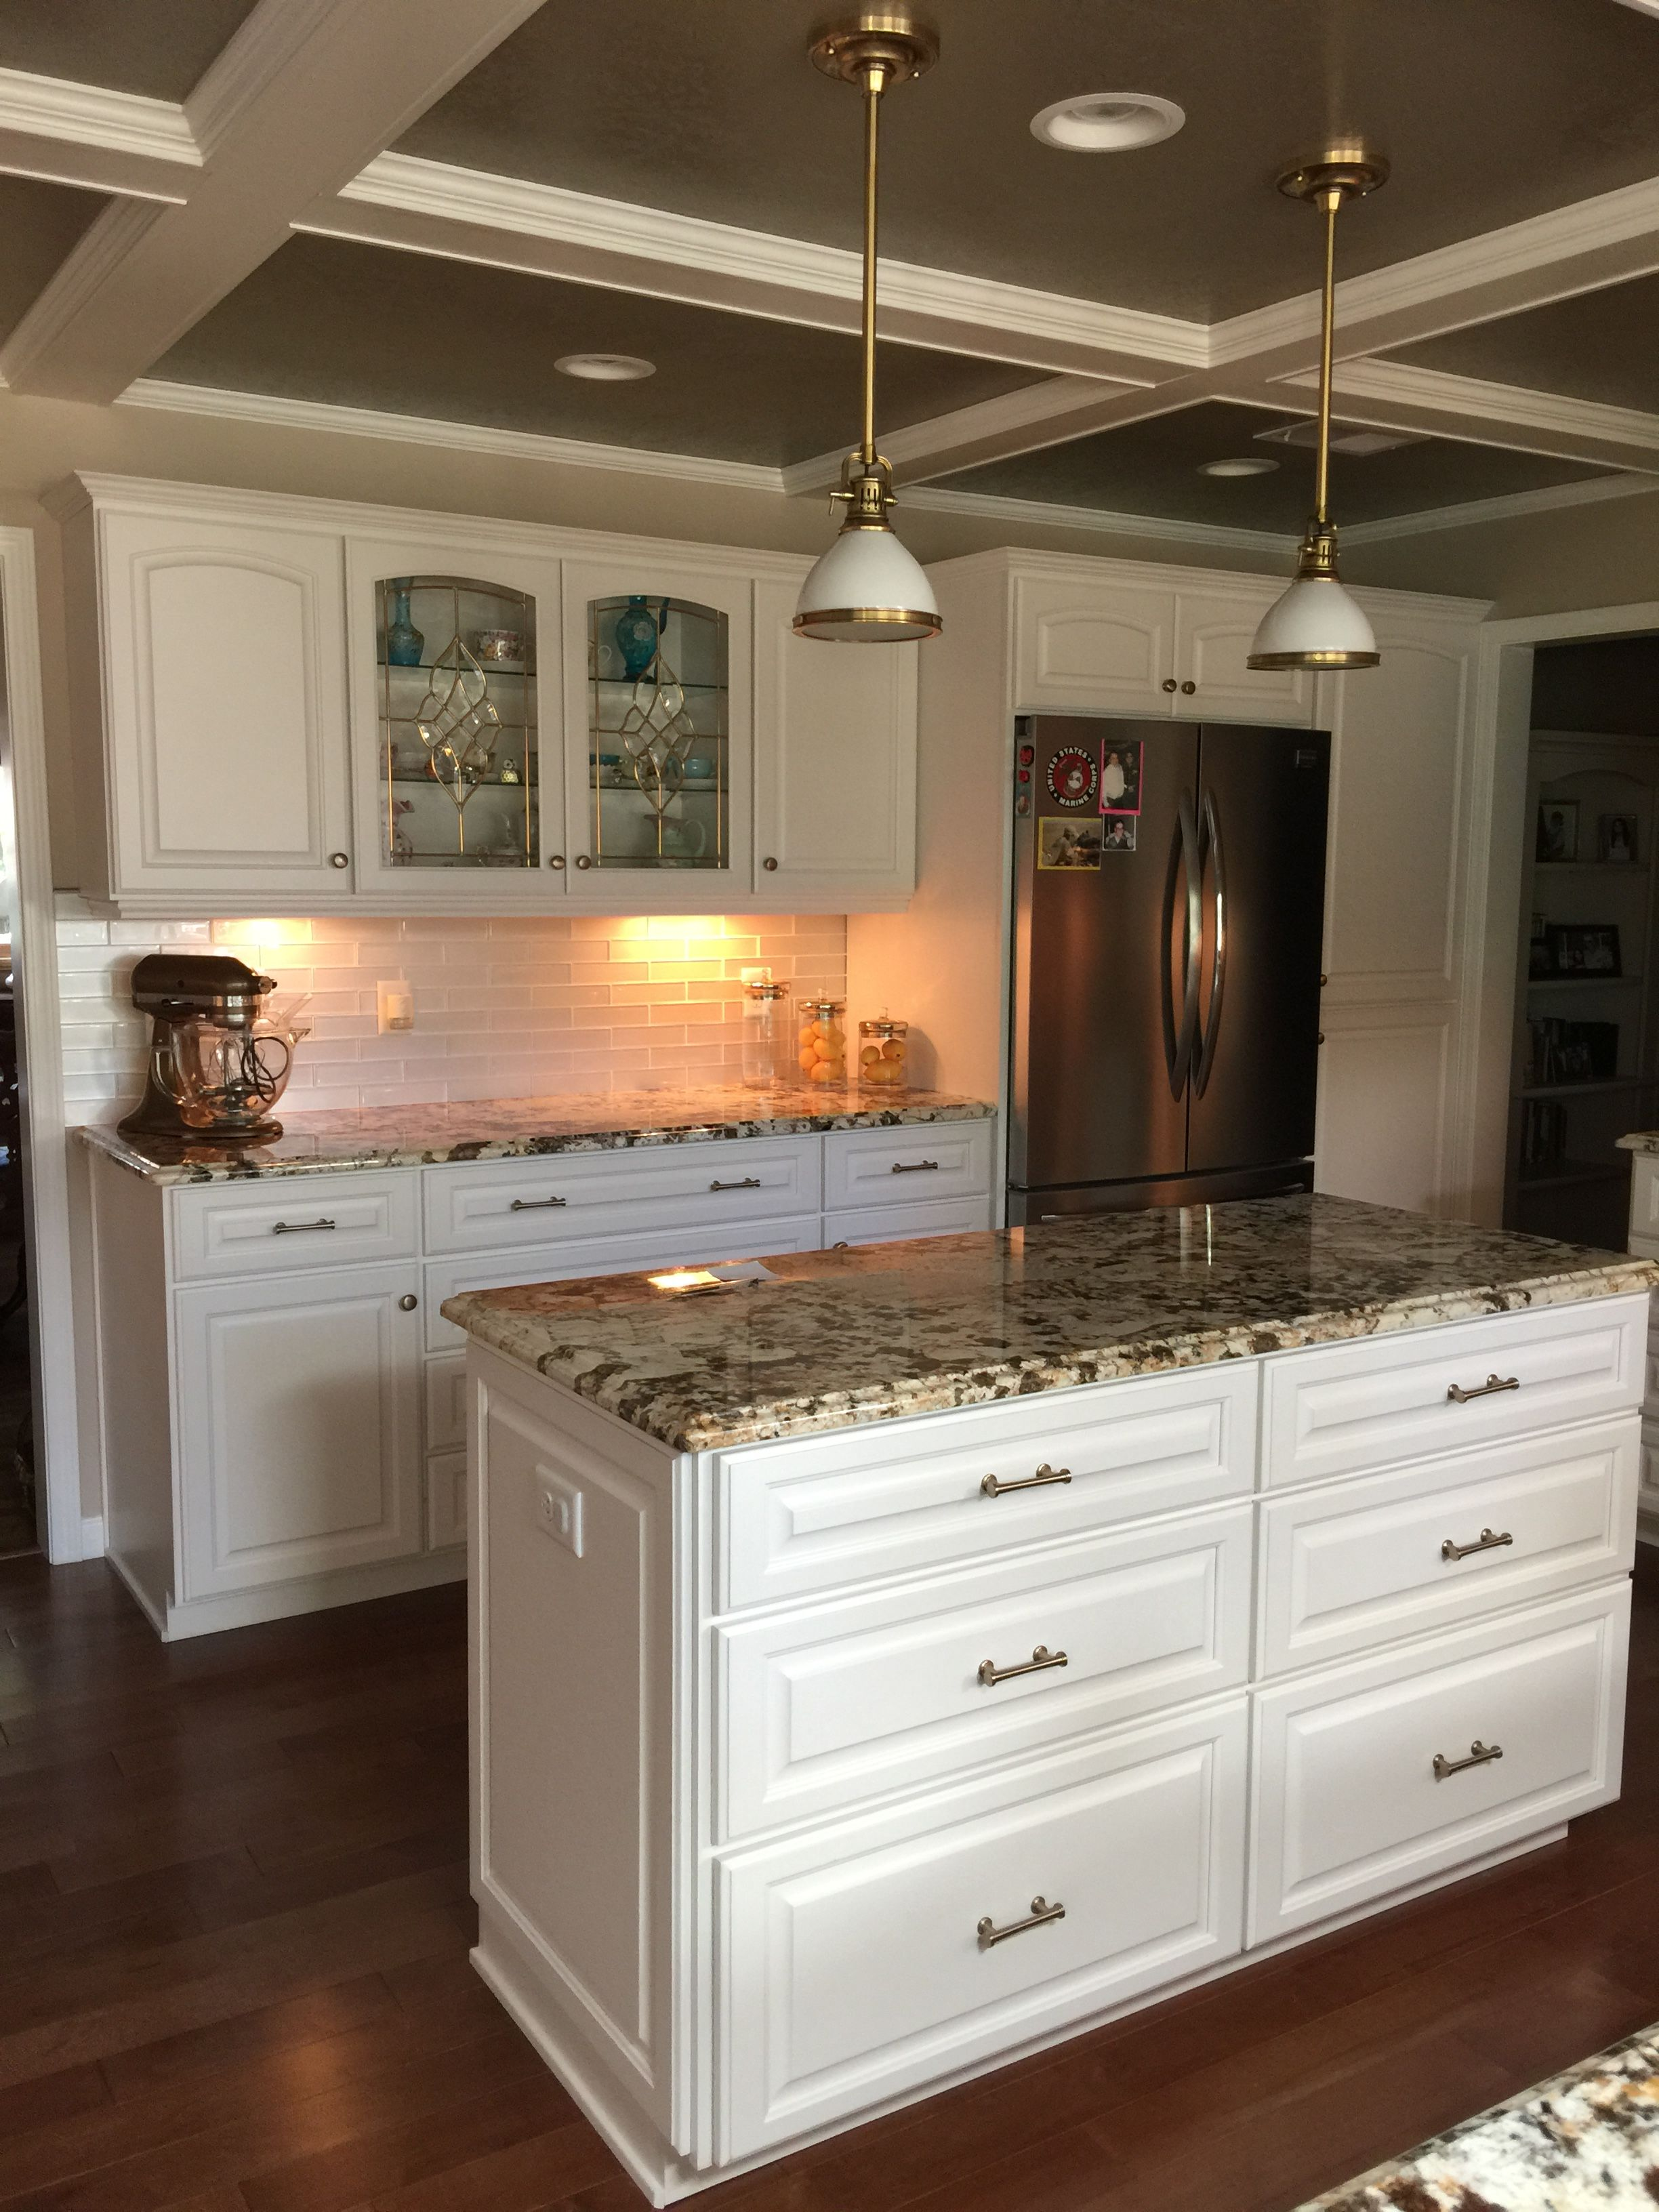 Kitchen with off white granite counters and